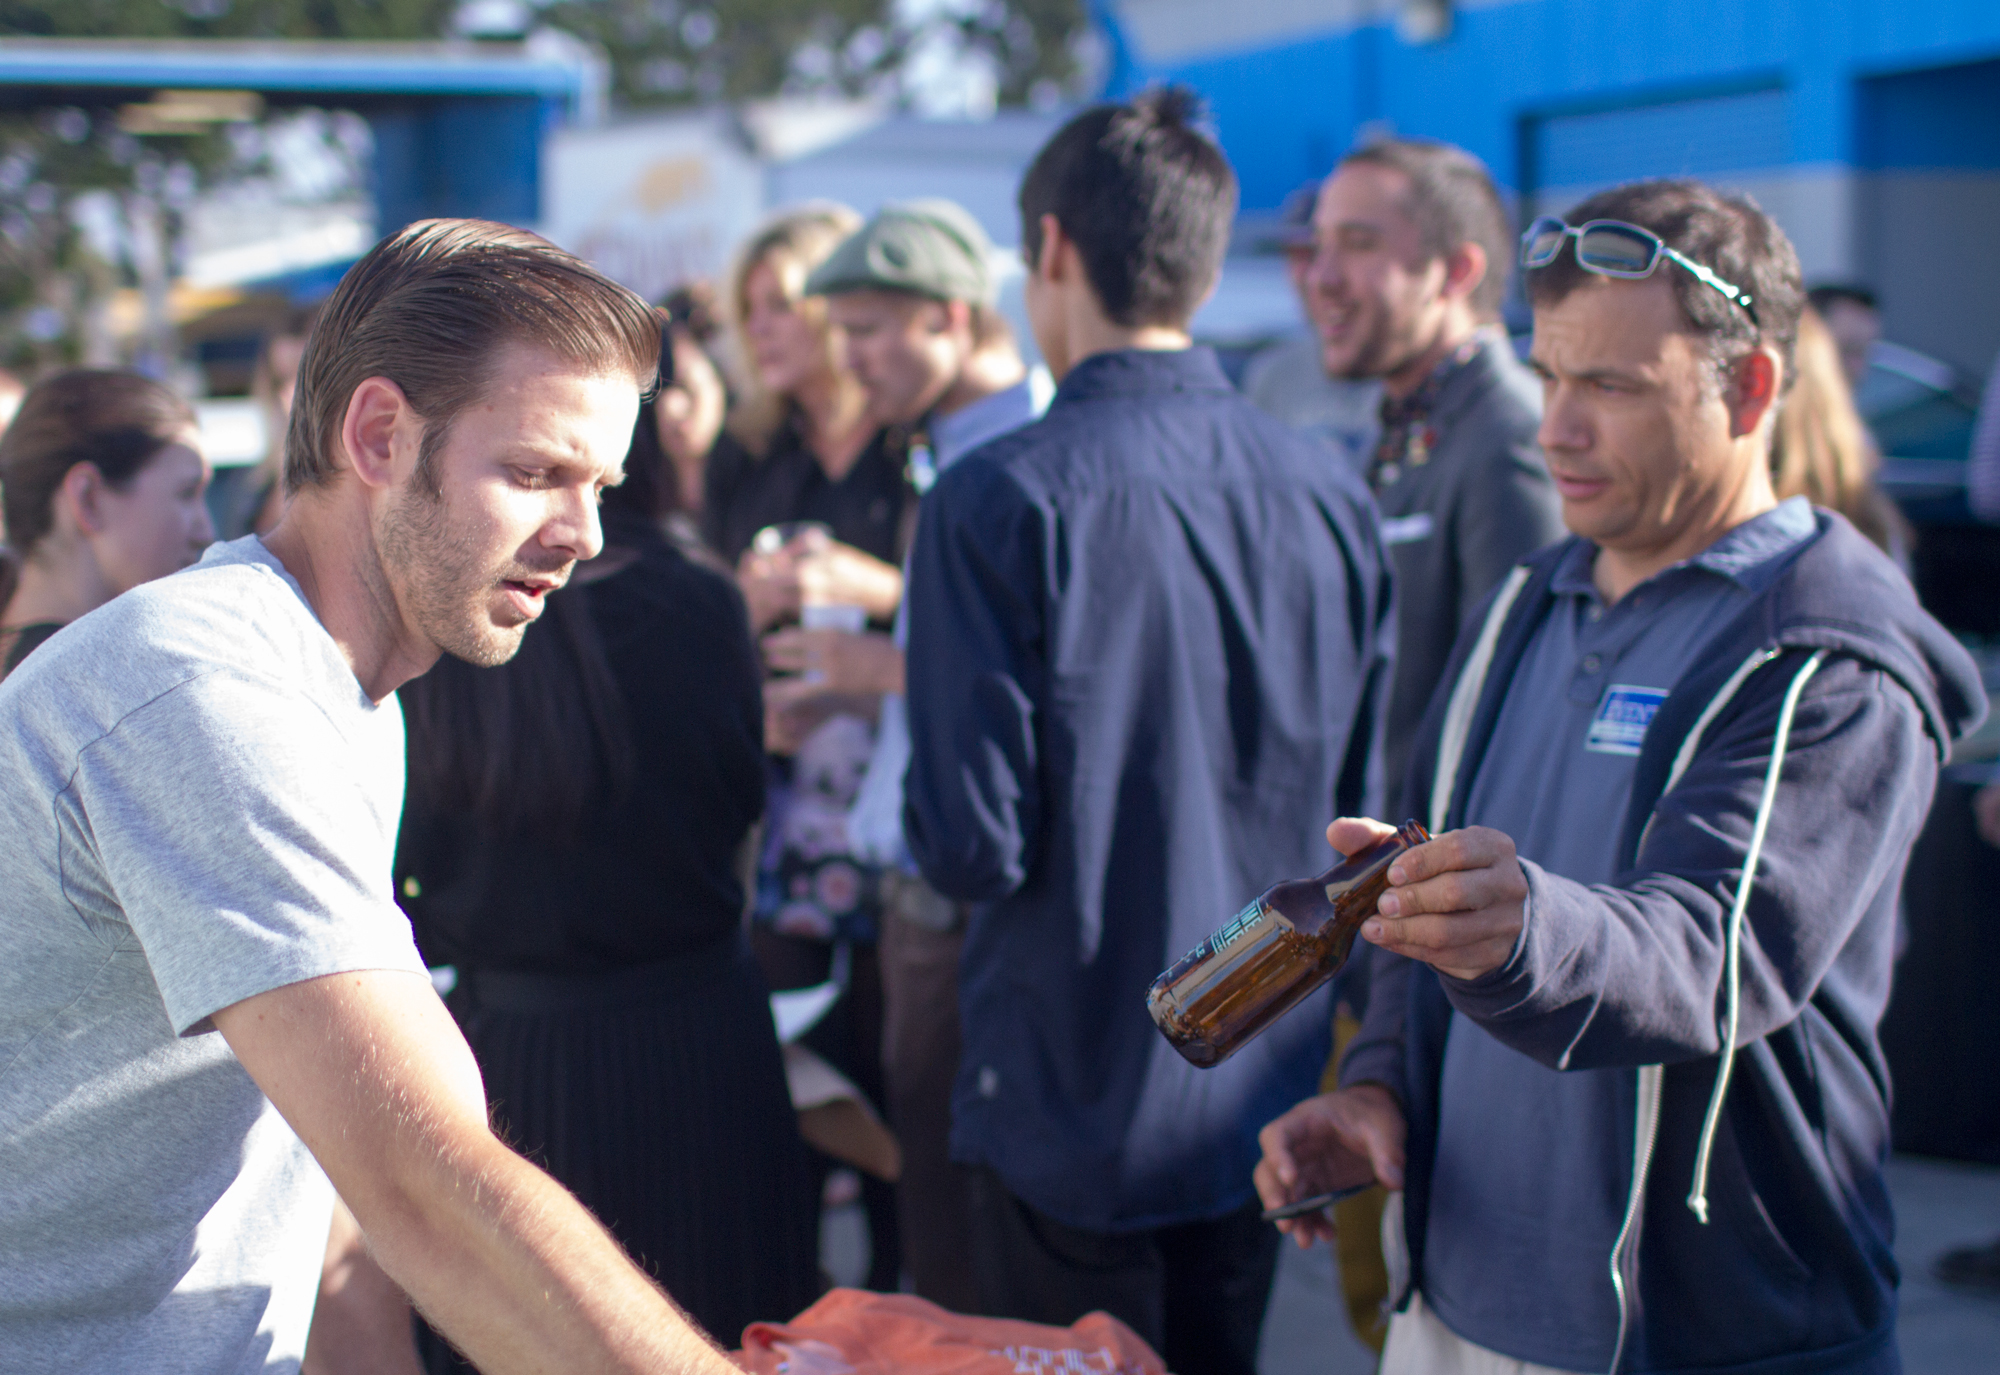 Nick Pavlina serving t-shirts, not beer at the Event Santa Cruz PopUp event last week